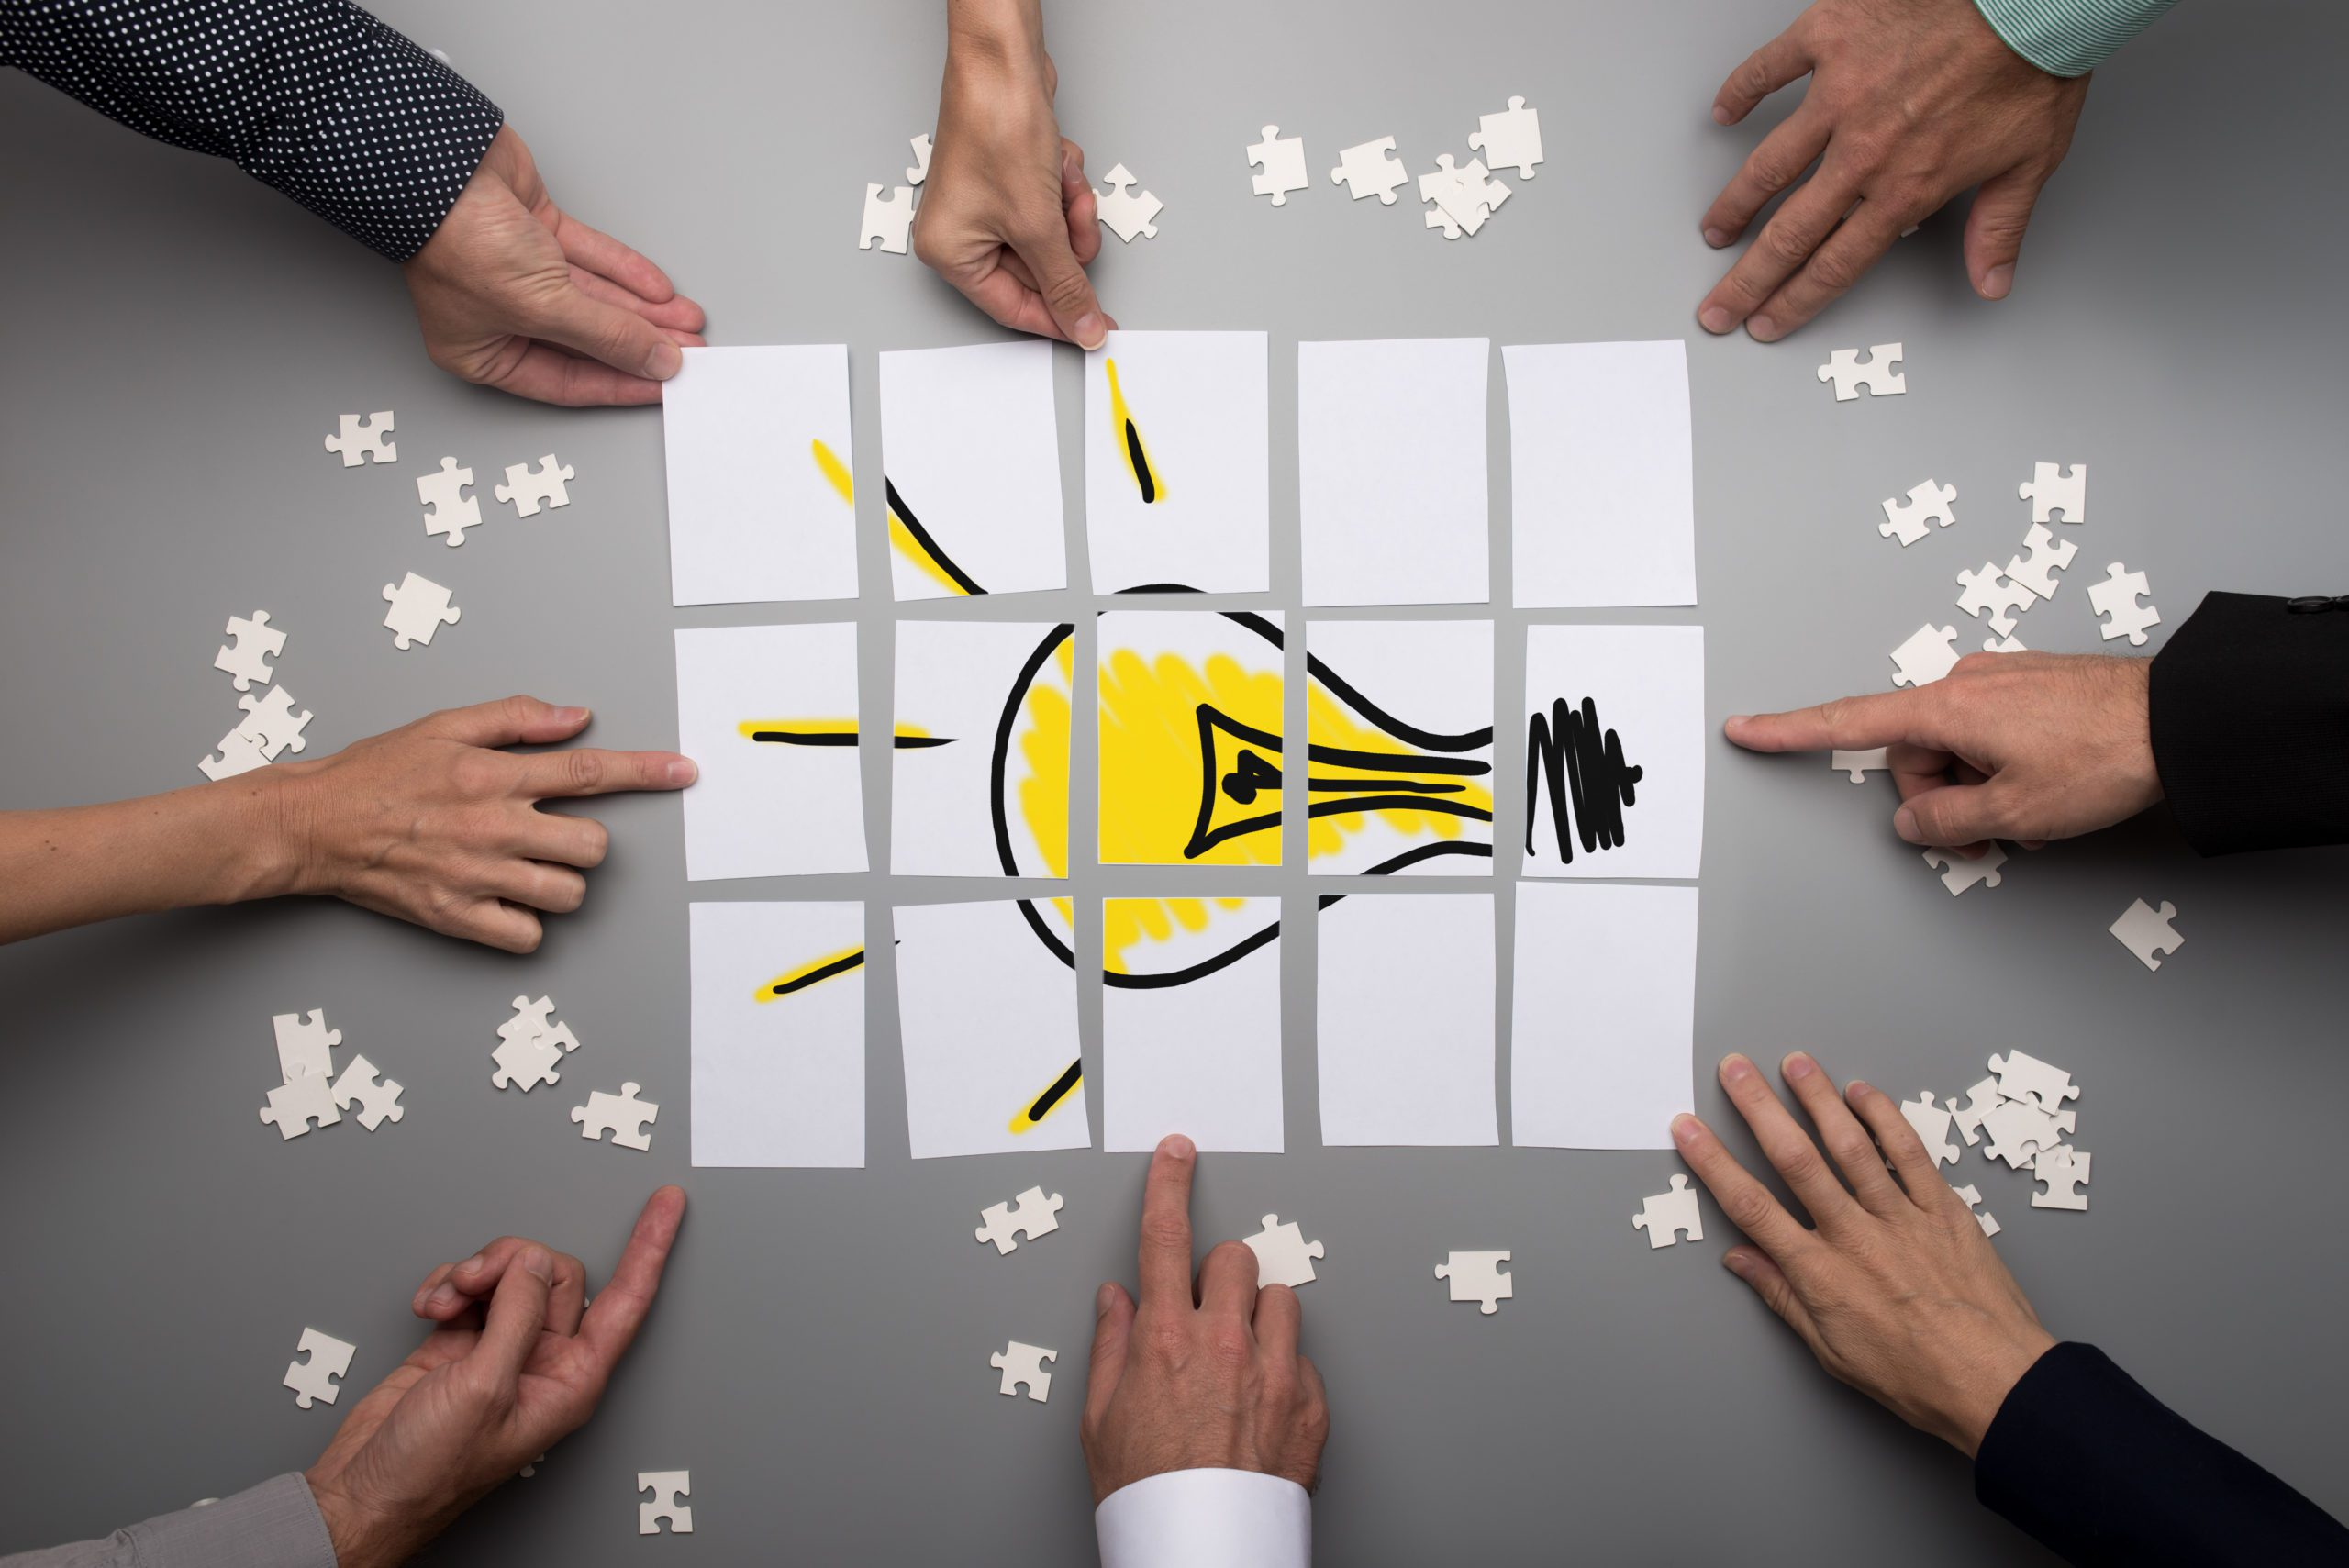 Top view of businesspeople hands touching white papers arranged on a gray table forming a yellow light bulb. Conceptual for brainstorming and teamwork.